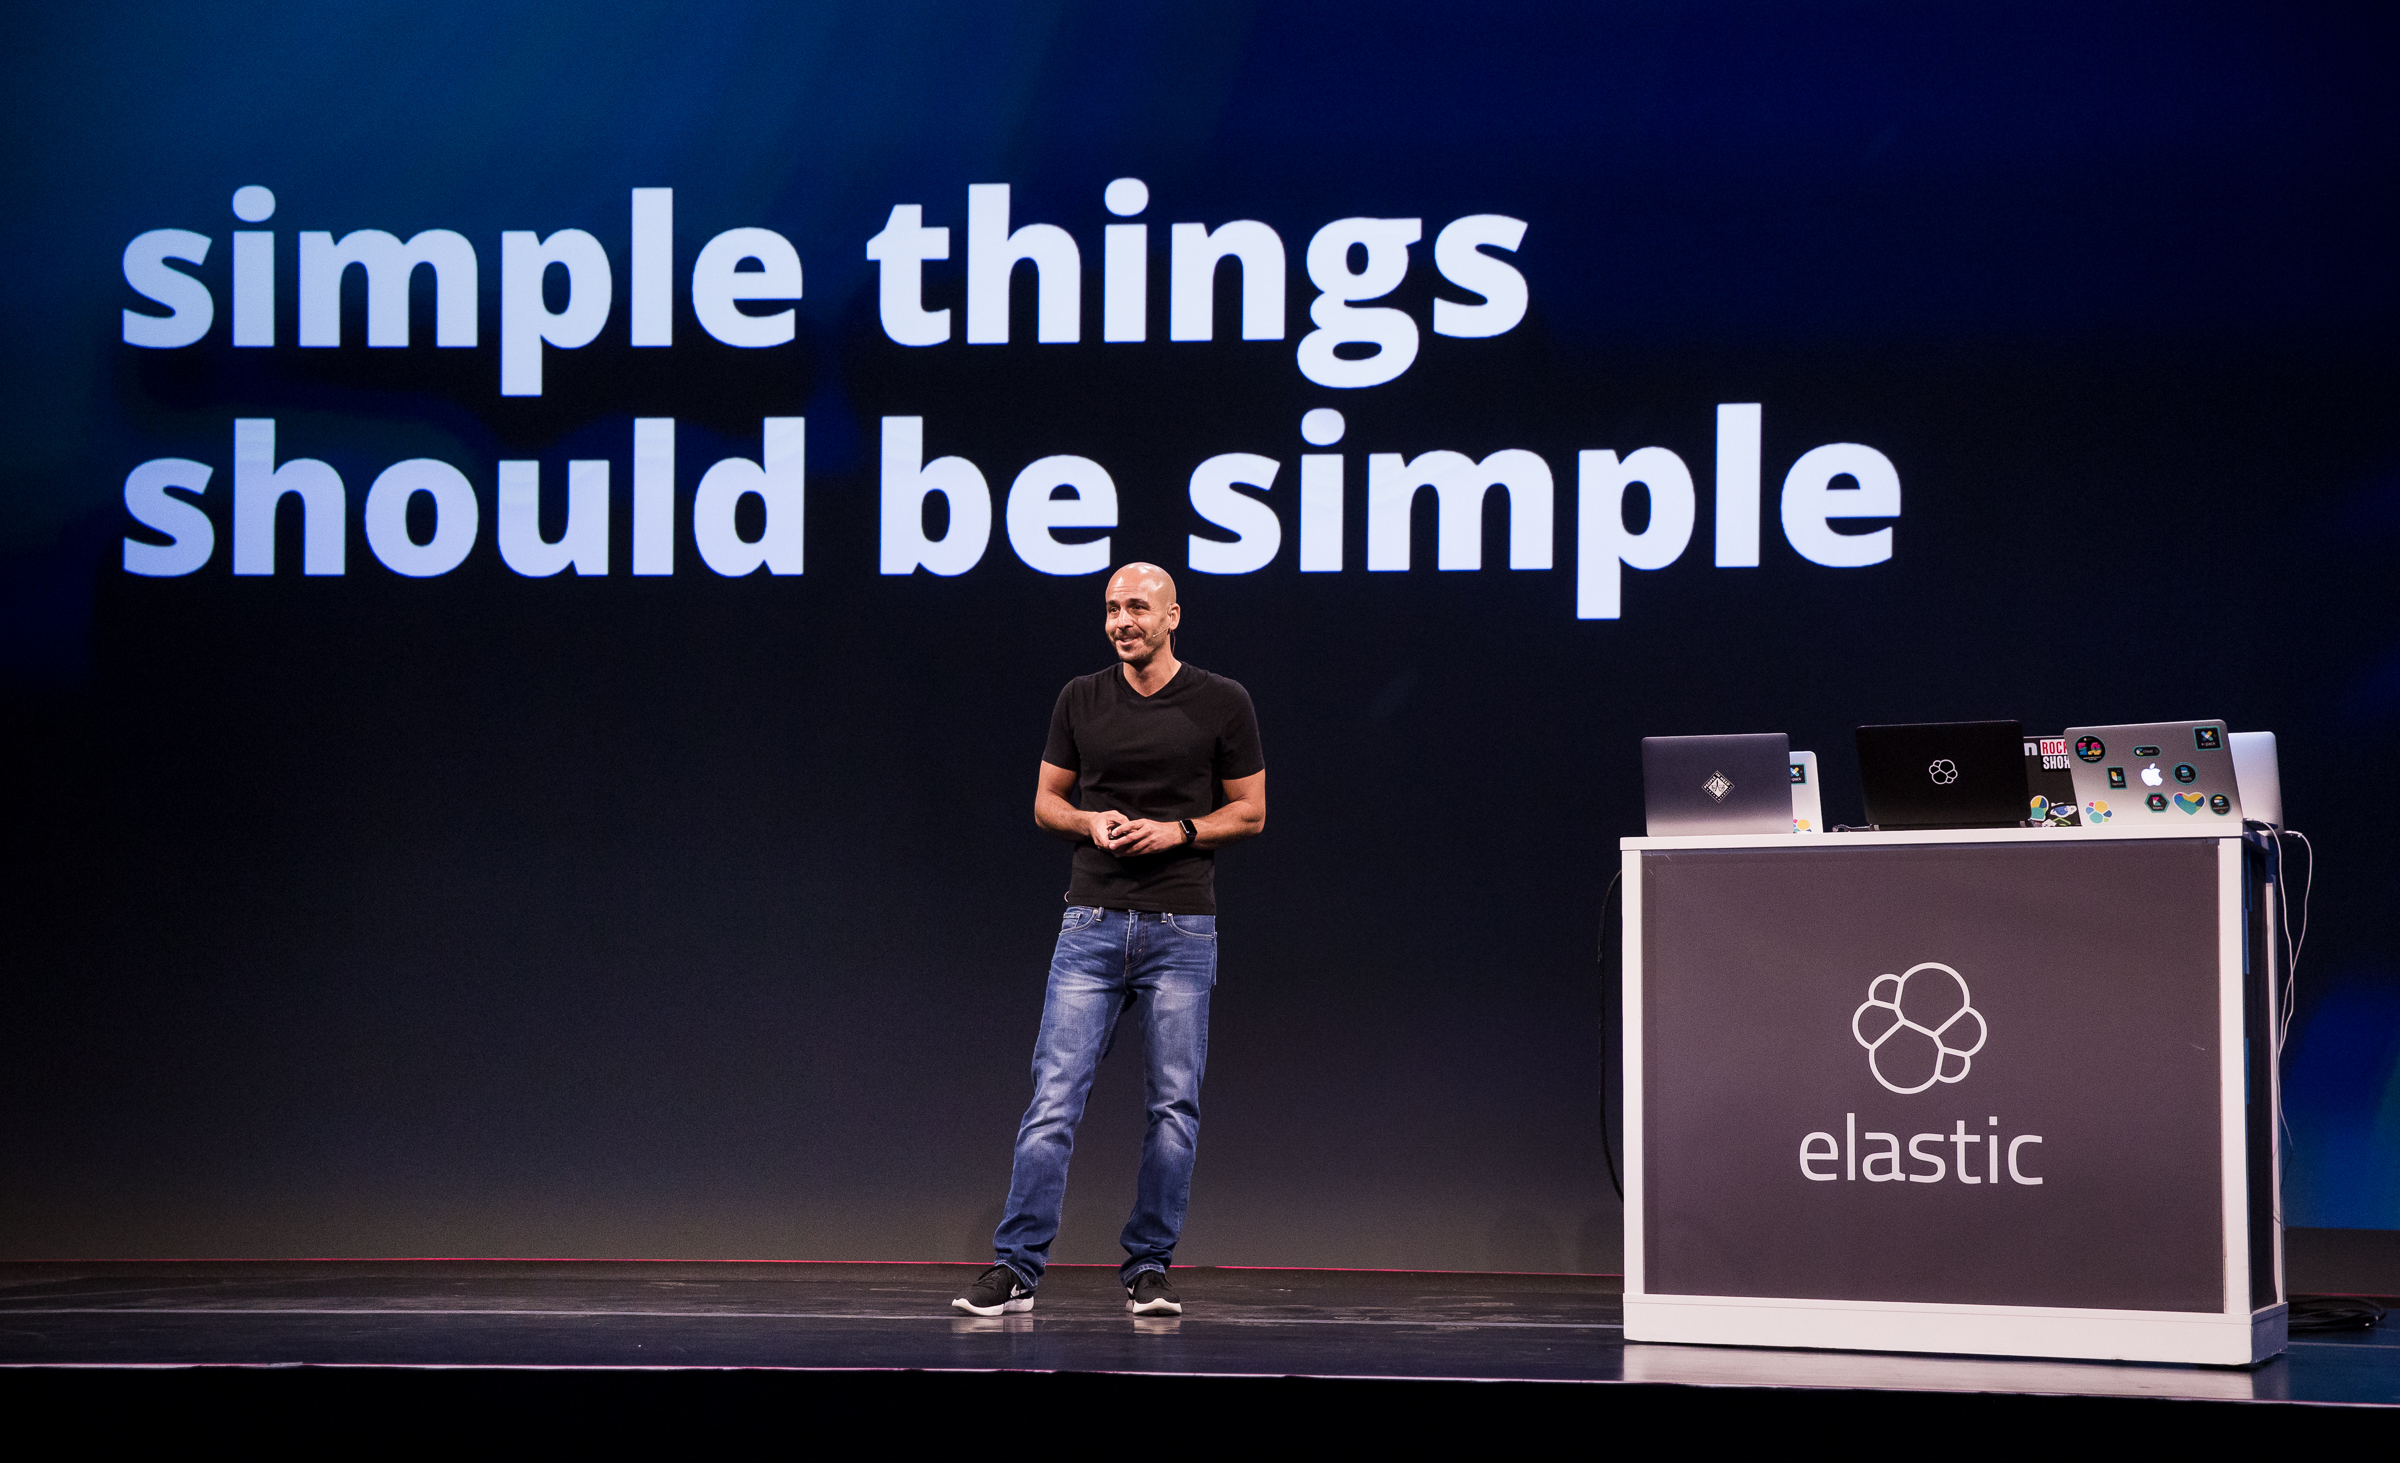 Shay Banon, CTO and co-founder of Elasticsearch